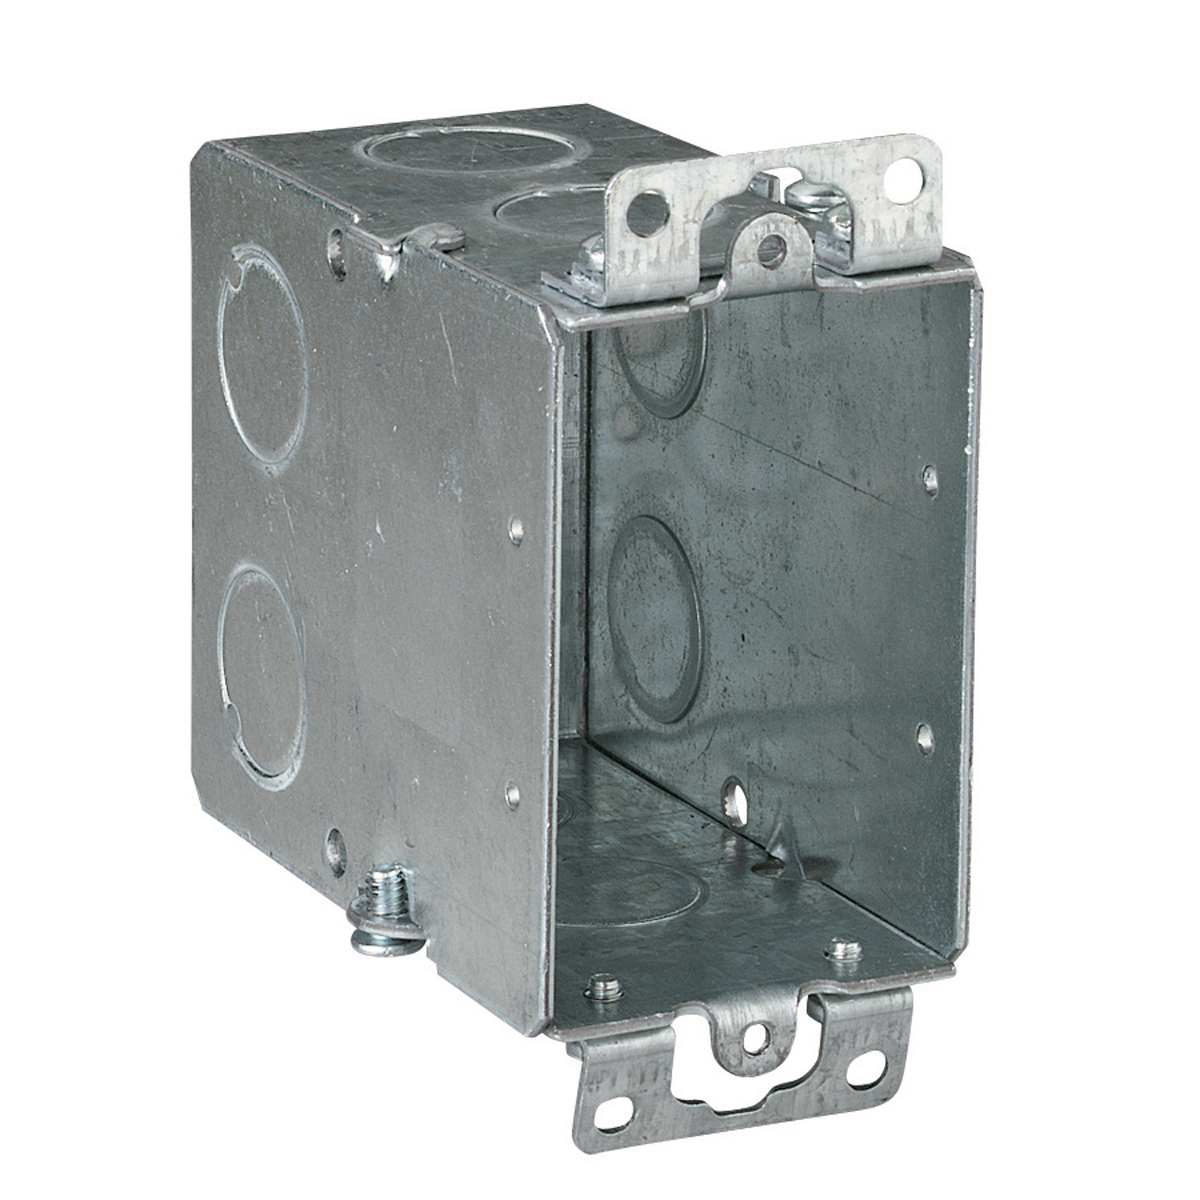 Steel City® Switch Box, Gangable, 1 Outlet, 1 Gang, 5 Knockouts, 1/2 in Knockout, Knockout Cable Entry, 18 cu-in Capacity, Steel, Electro-Galvanized, Silver, 3 in H x 2 in W x 3-1/2 in D Dimensions